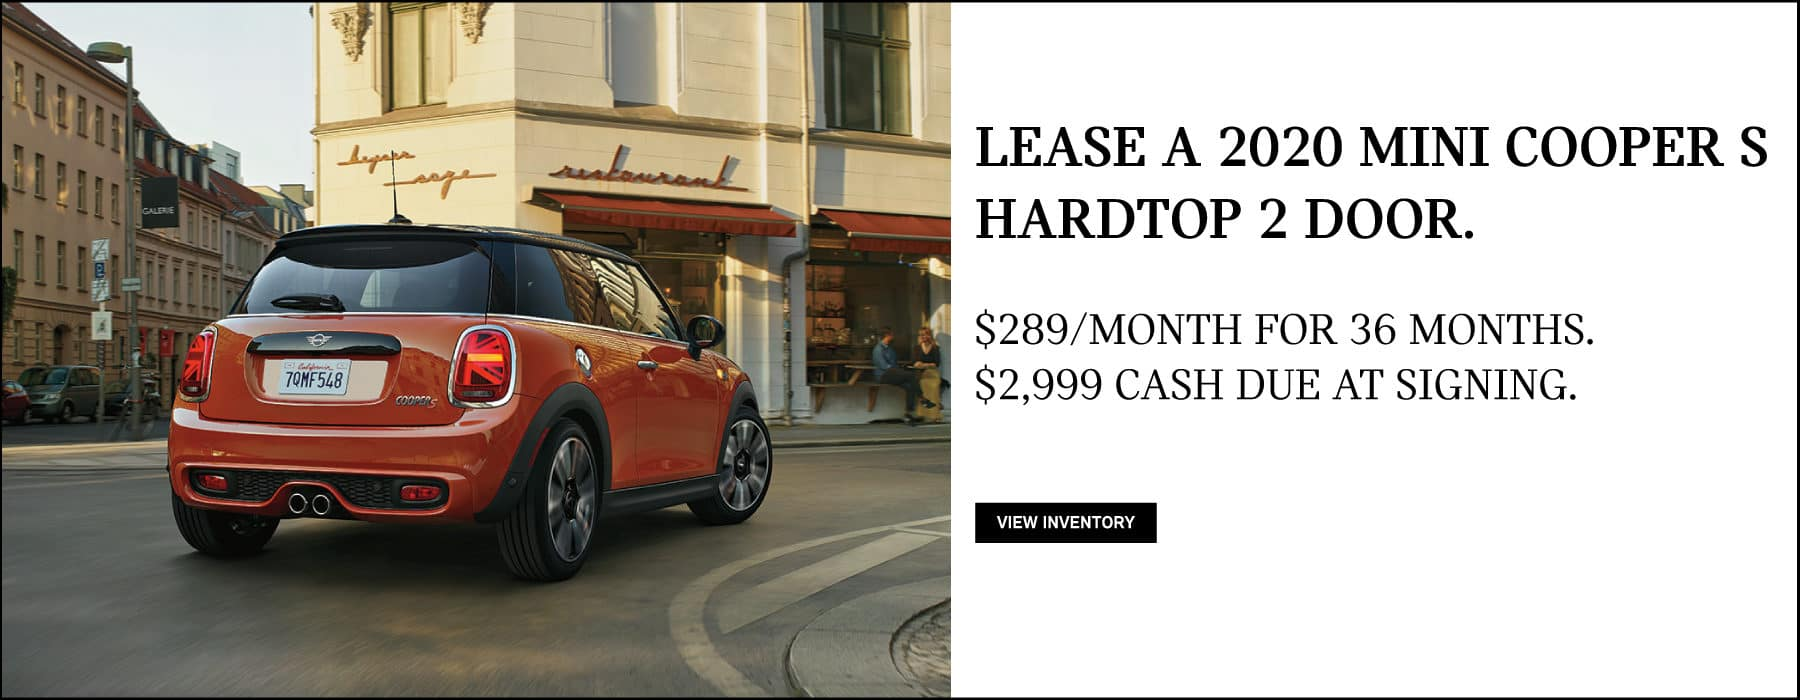 Lease a 2020 MINI Cooper S Hardtop 2 Door for $289/mo. View Inventory